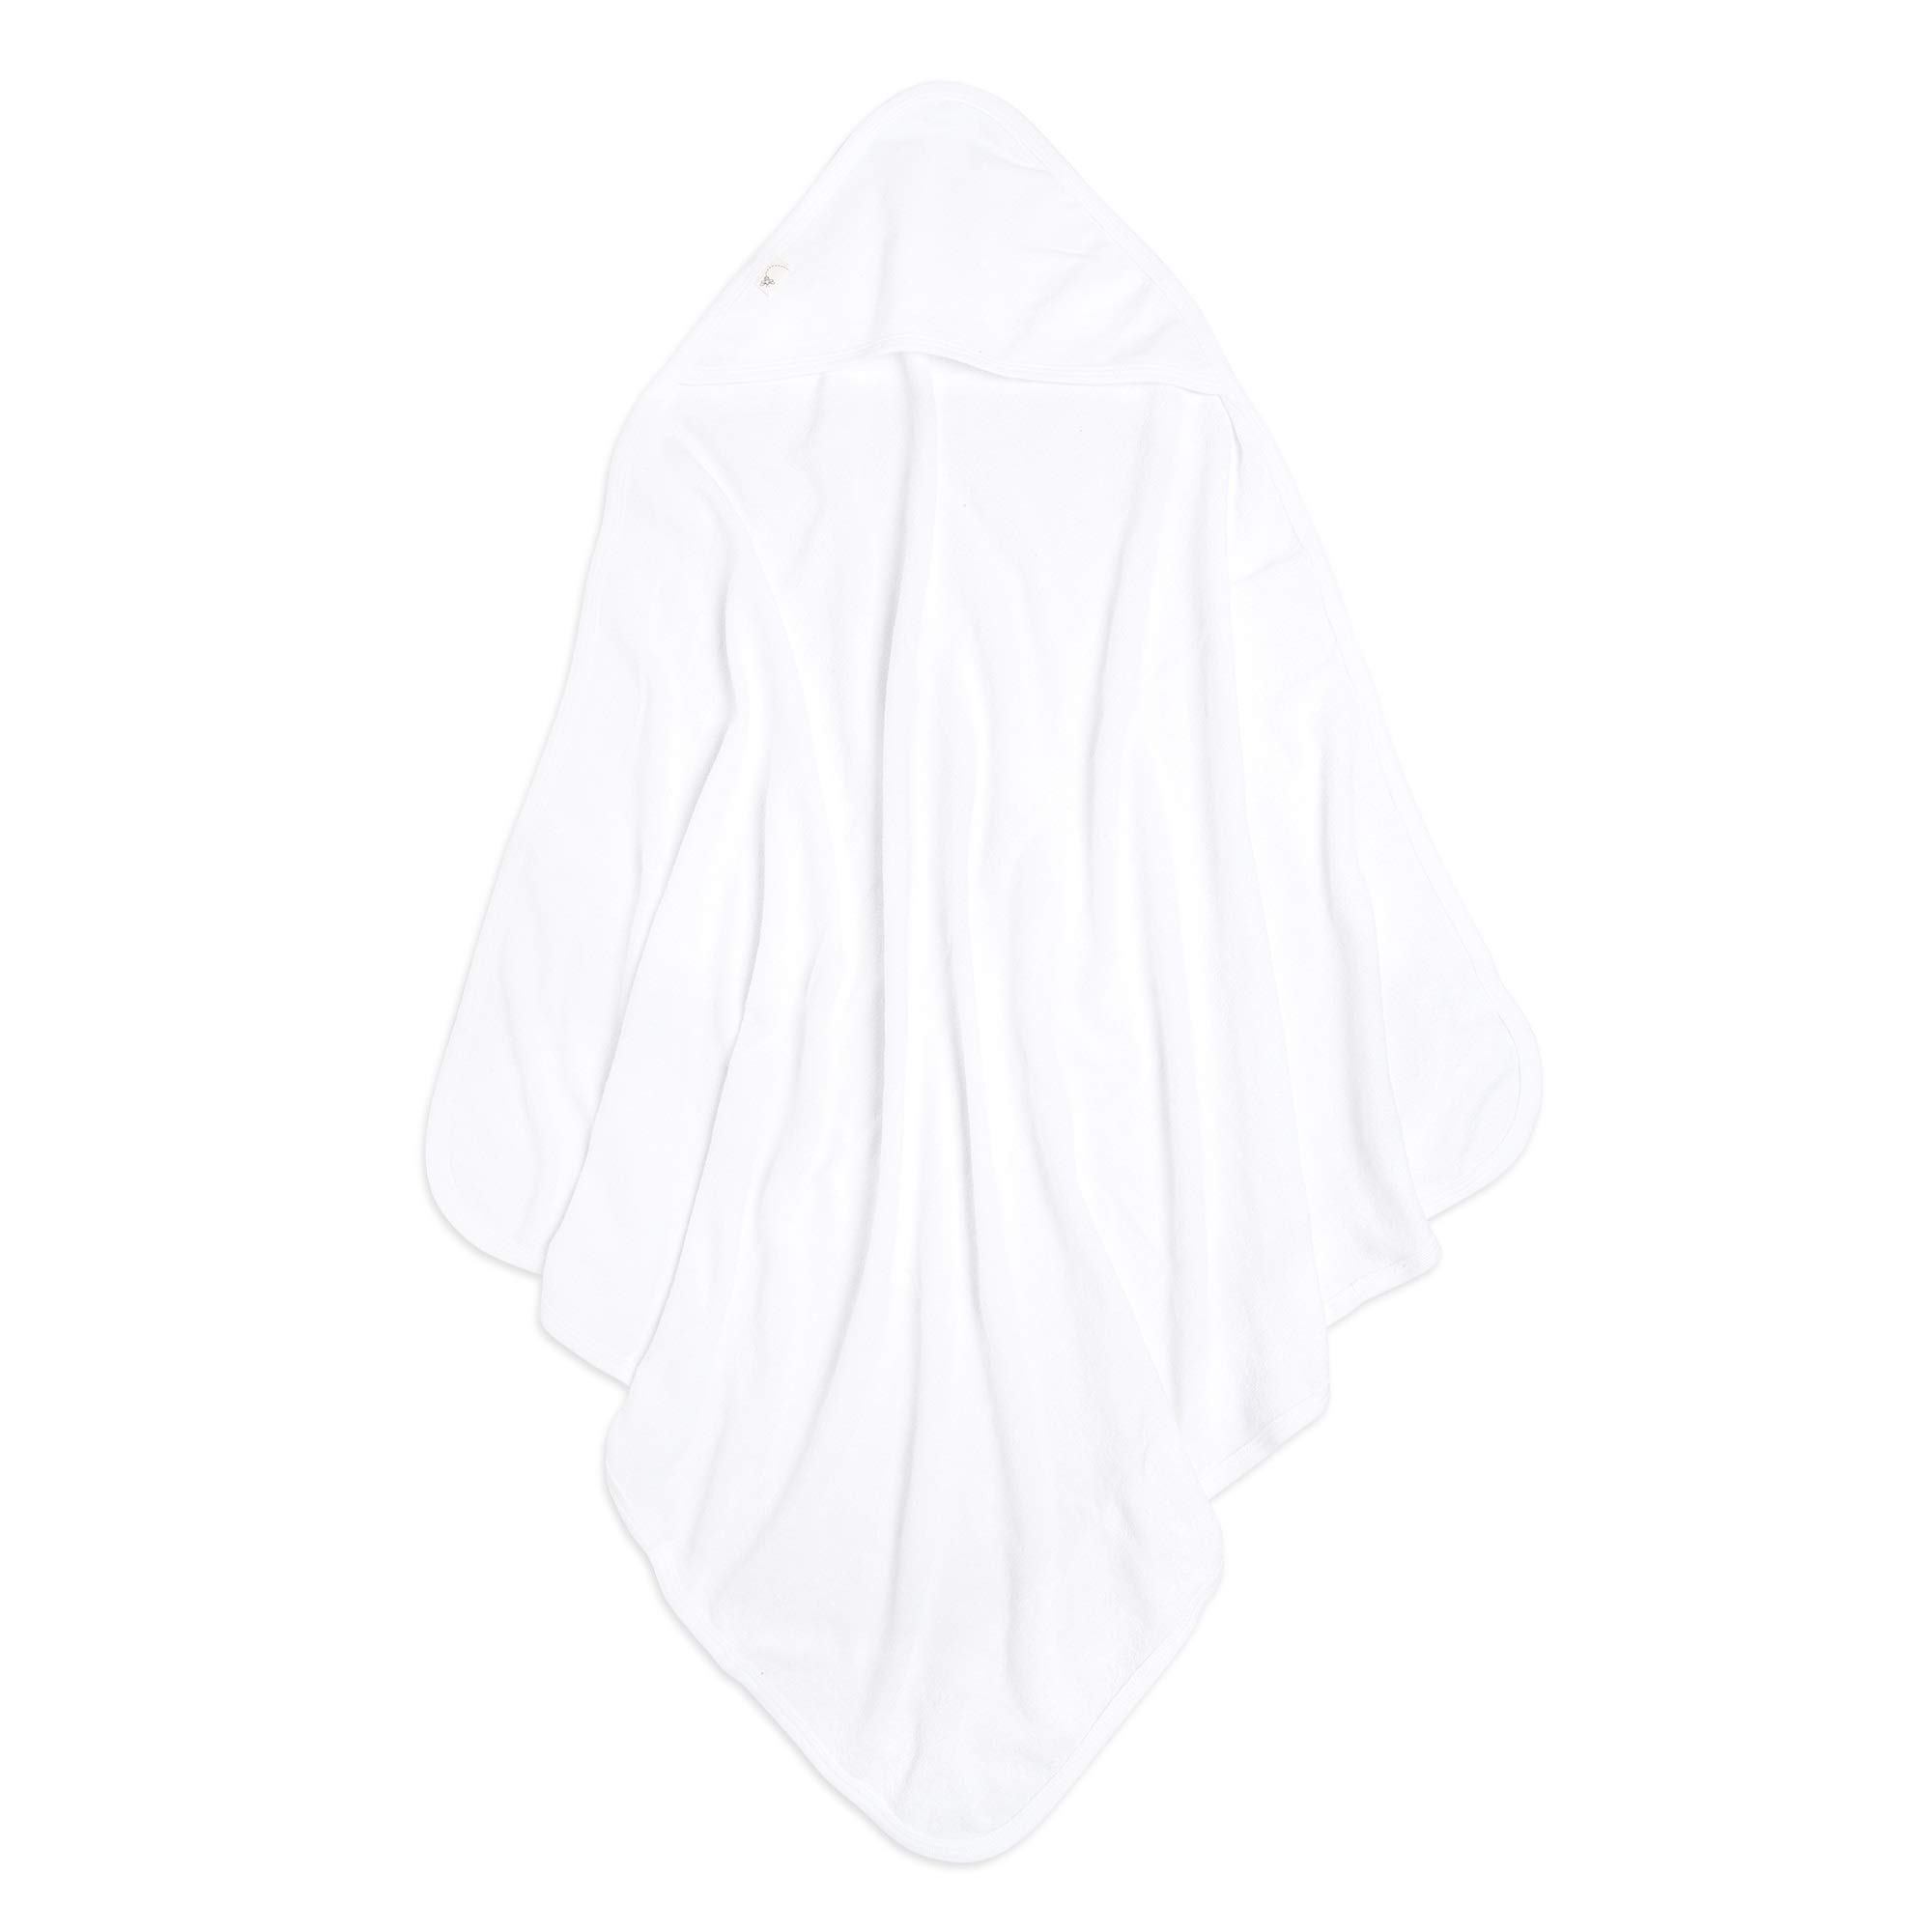 Burt's Bees Baby Infant Single Ply Hooded Towel 100% Organic Cotton, Cloud